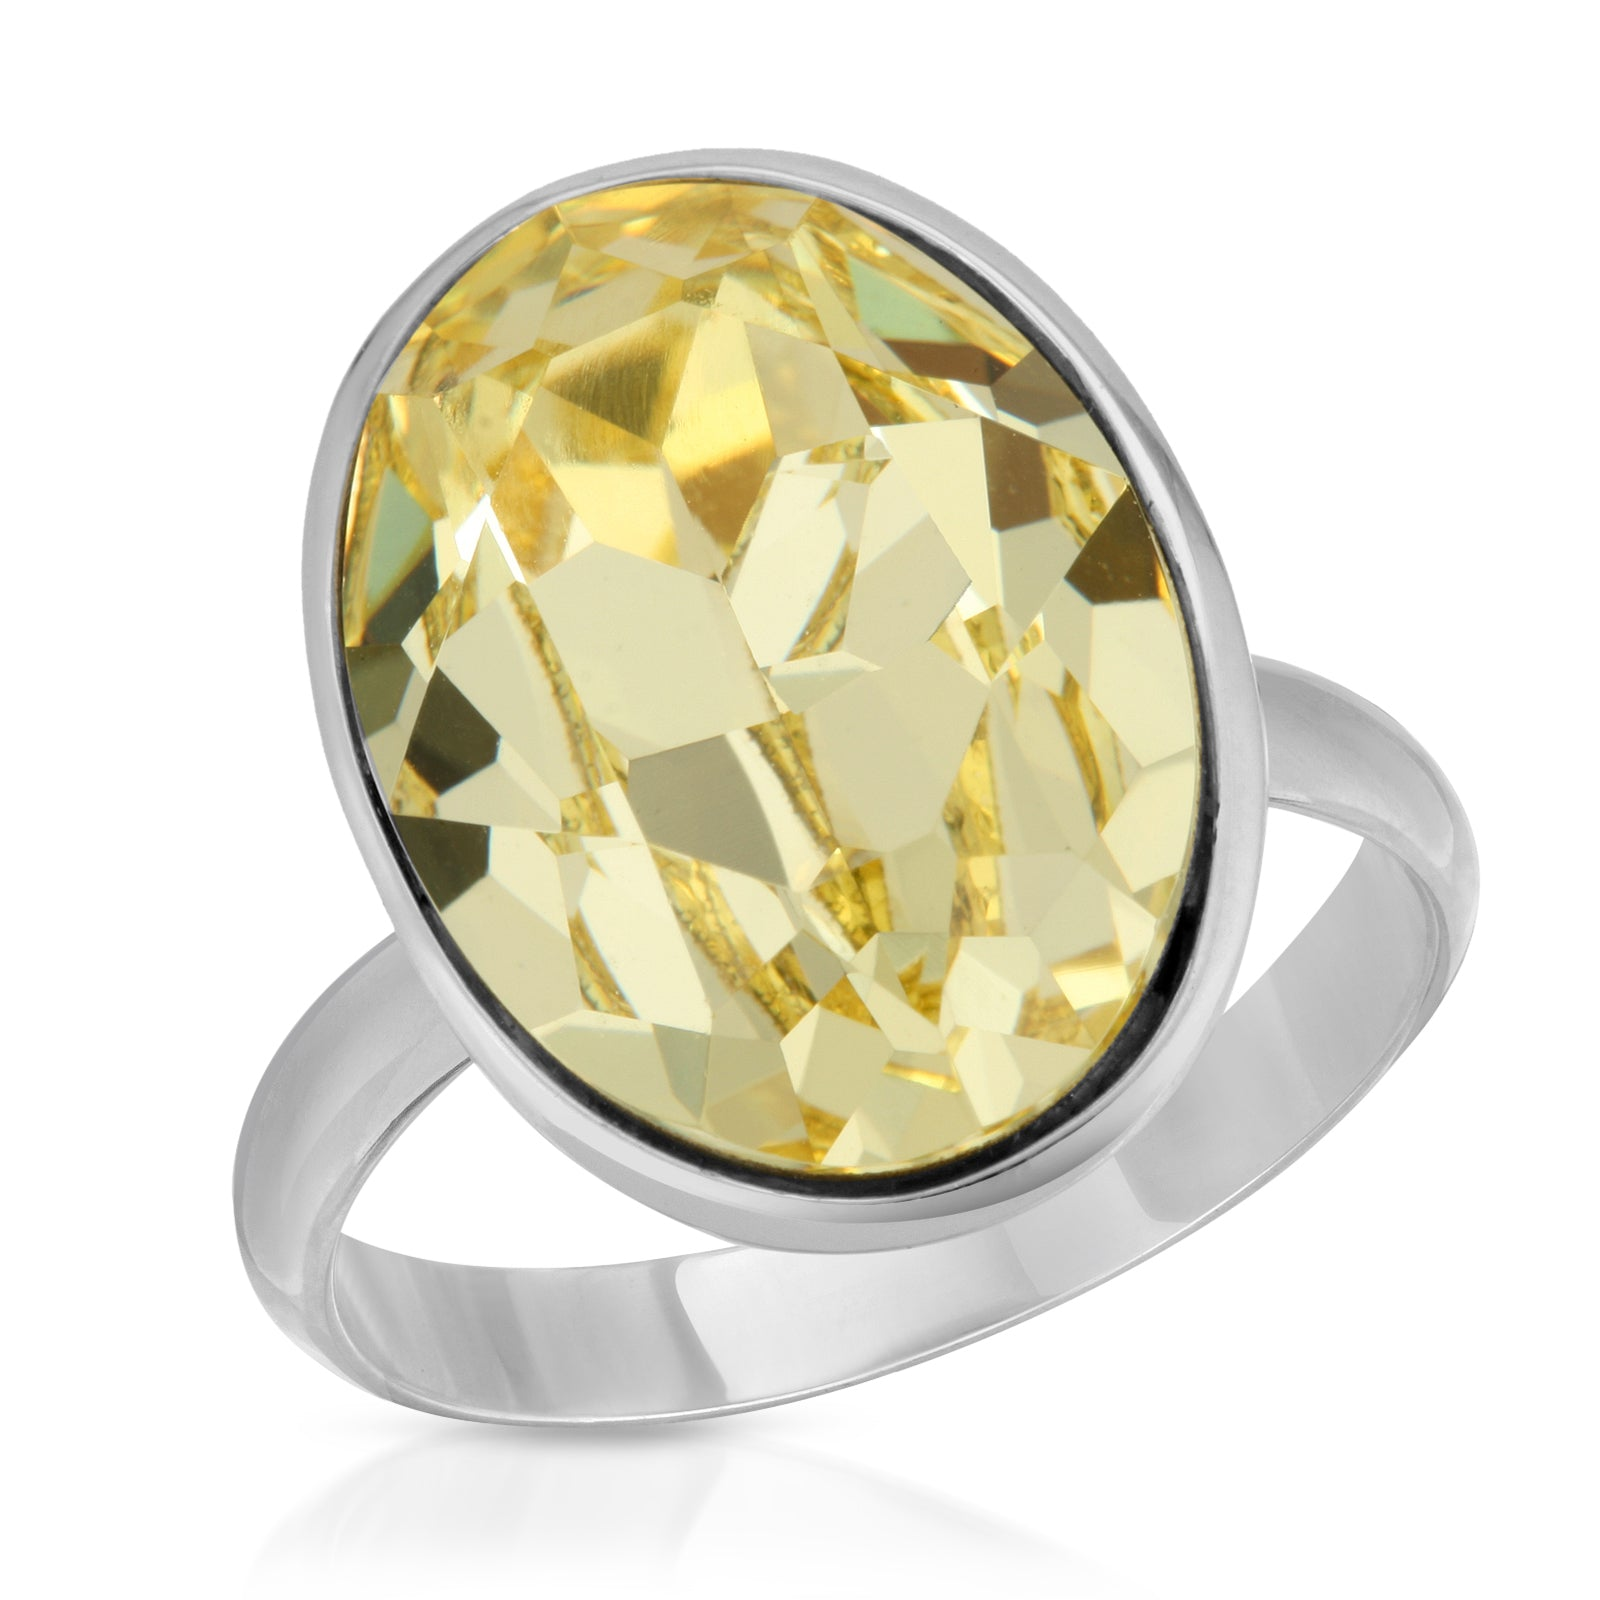 The W Brothers Premium Grade A 925 Sterling Silver Ecliptic Yellow Topaz Swarovski Ring, our tri-toned Amethyst Swarovski crystal element with our premium 925 Sterling Silver. Perfect for a fashionable statement for men and women's jewelry accessory. Available at www.thewbros.com